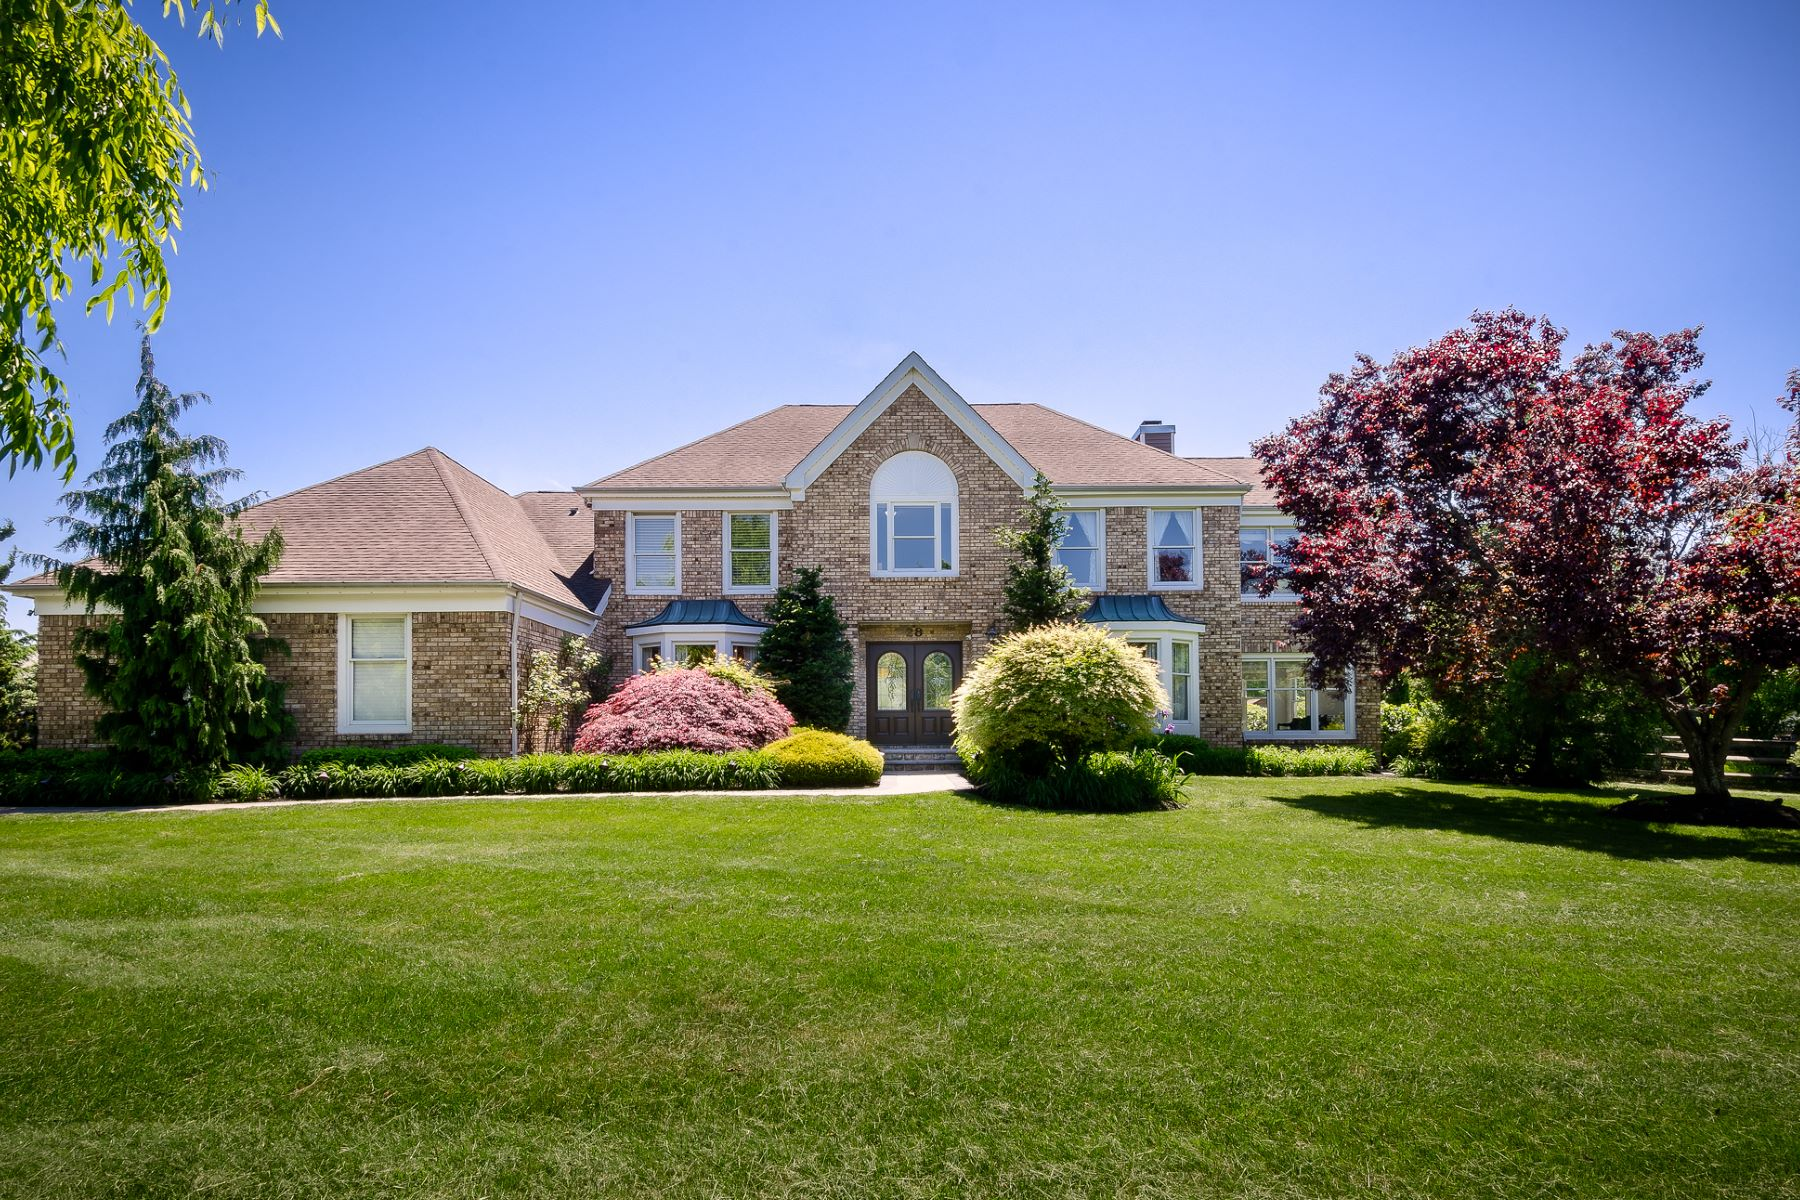 Property für Verkauf beim Perfect Place to Unwind in Windsor Park Estates 28 Sapphire Drive, West Windsor, New Jersey 08550 Vereinigte Staaten